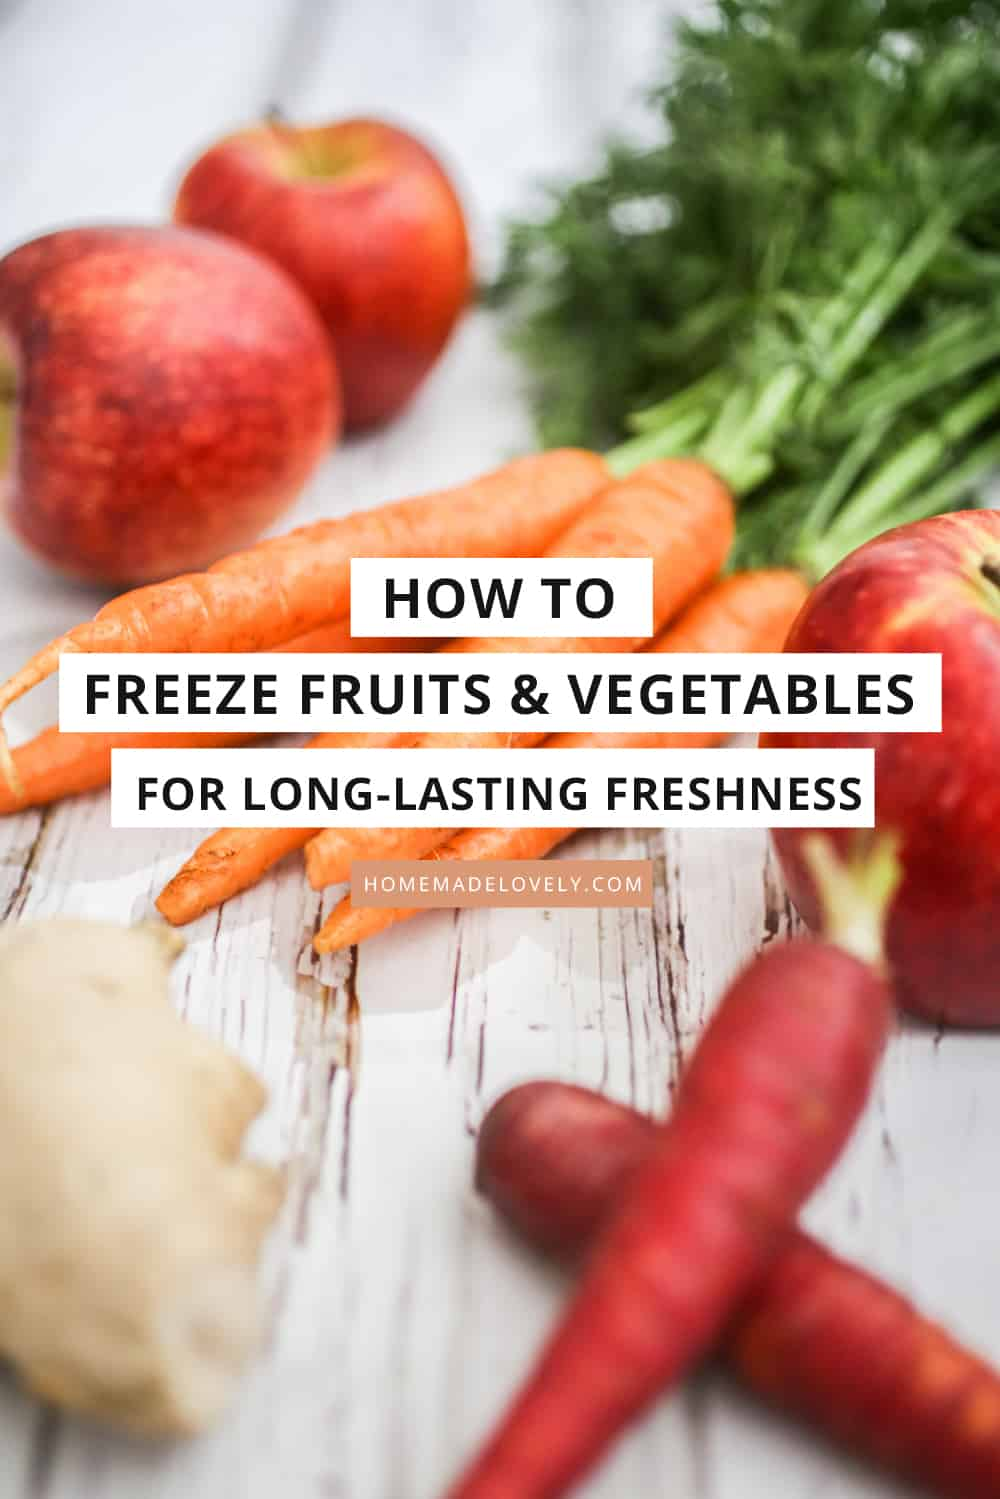 raw fruit and vegetables on counter with text overlay that says how to freeze fruits and vegetables